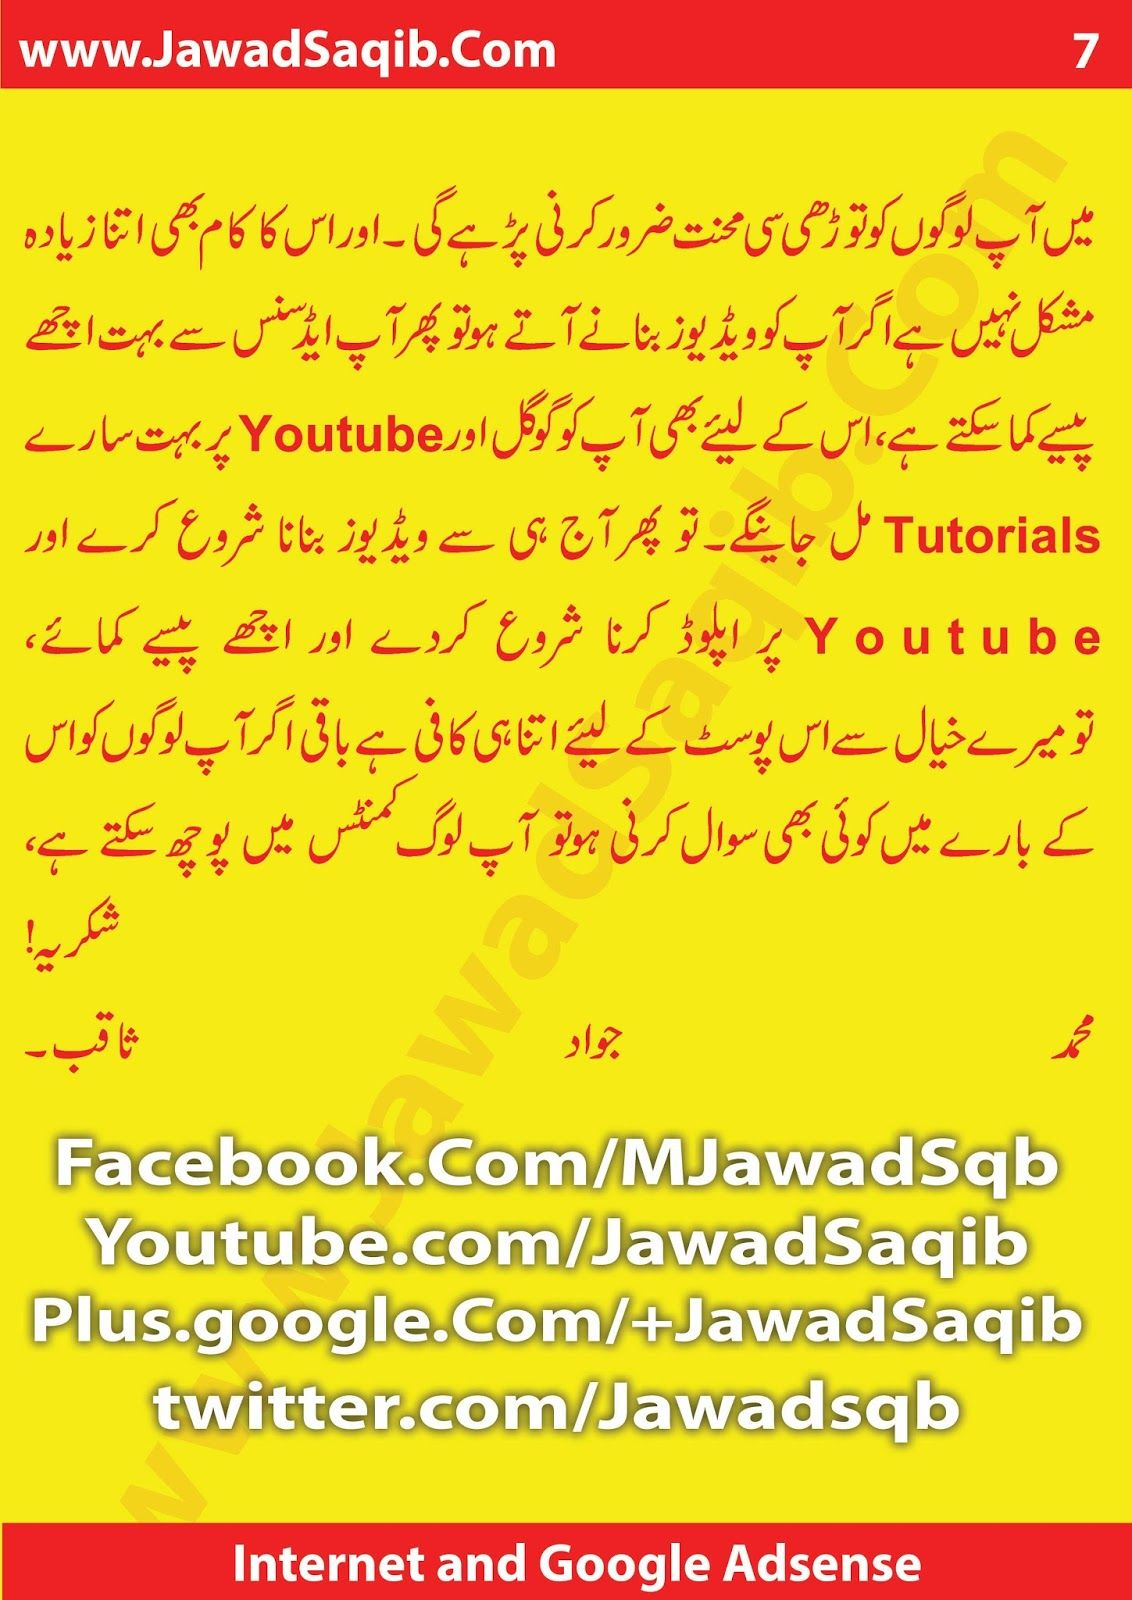 How To Earn Money From Google Adsense In Urdu